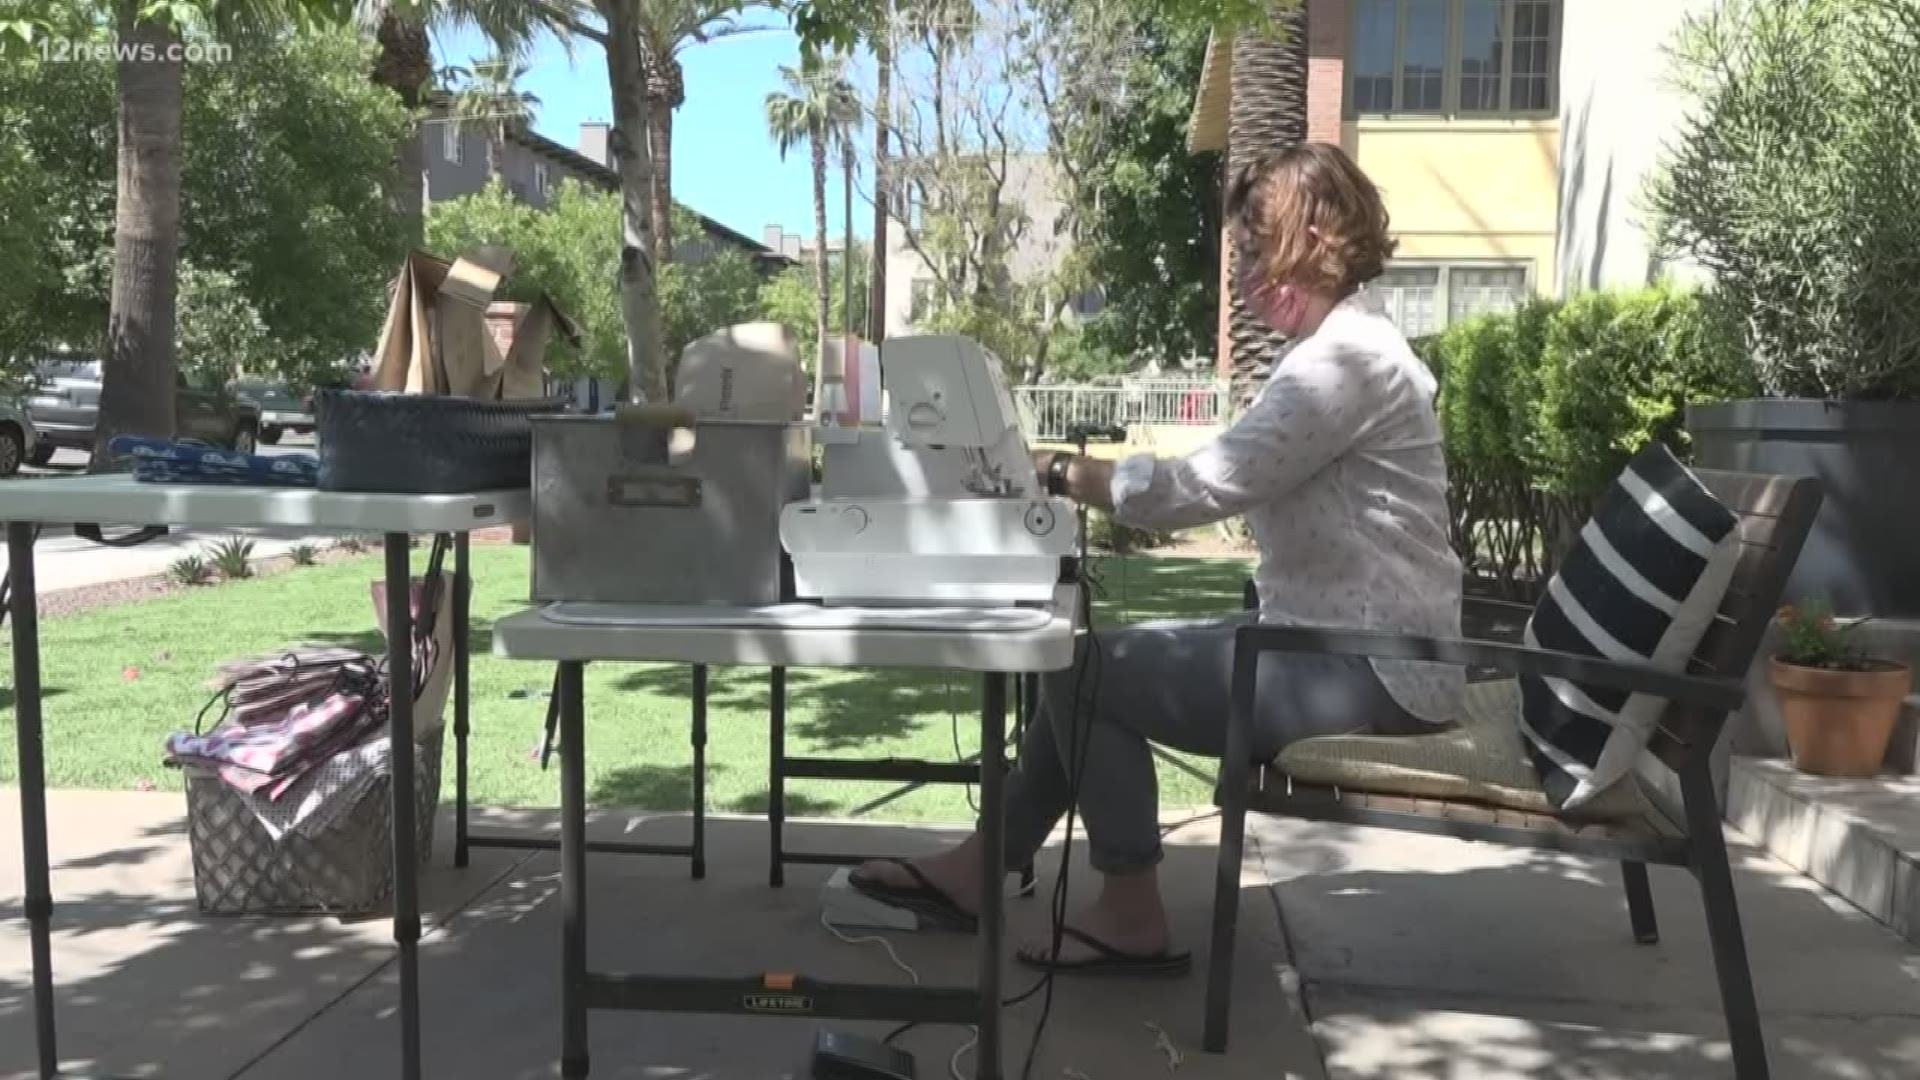 Phoenix Woman Sets Up Massive Mask Making Operation In Her Front